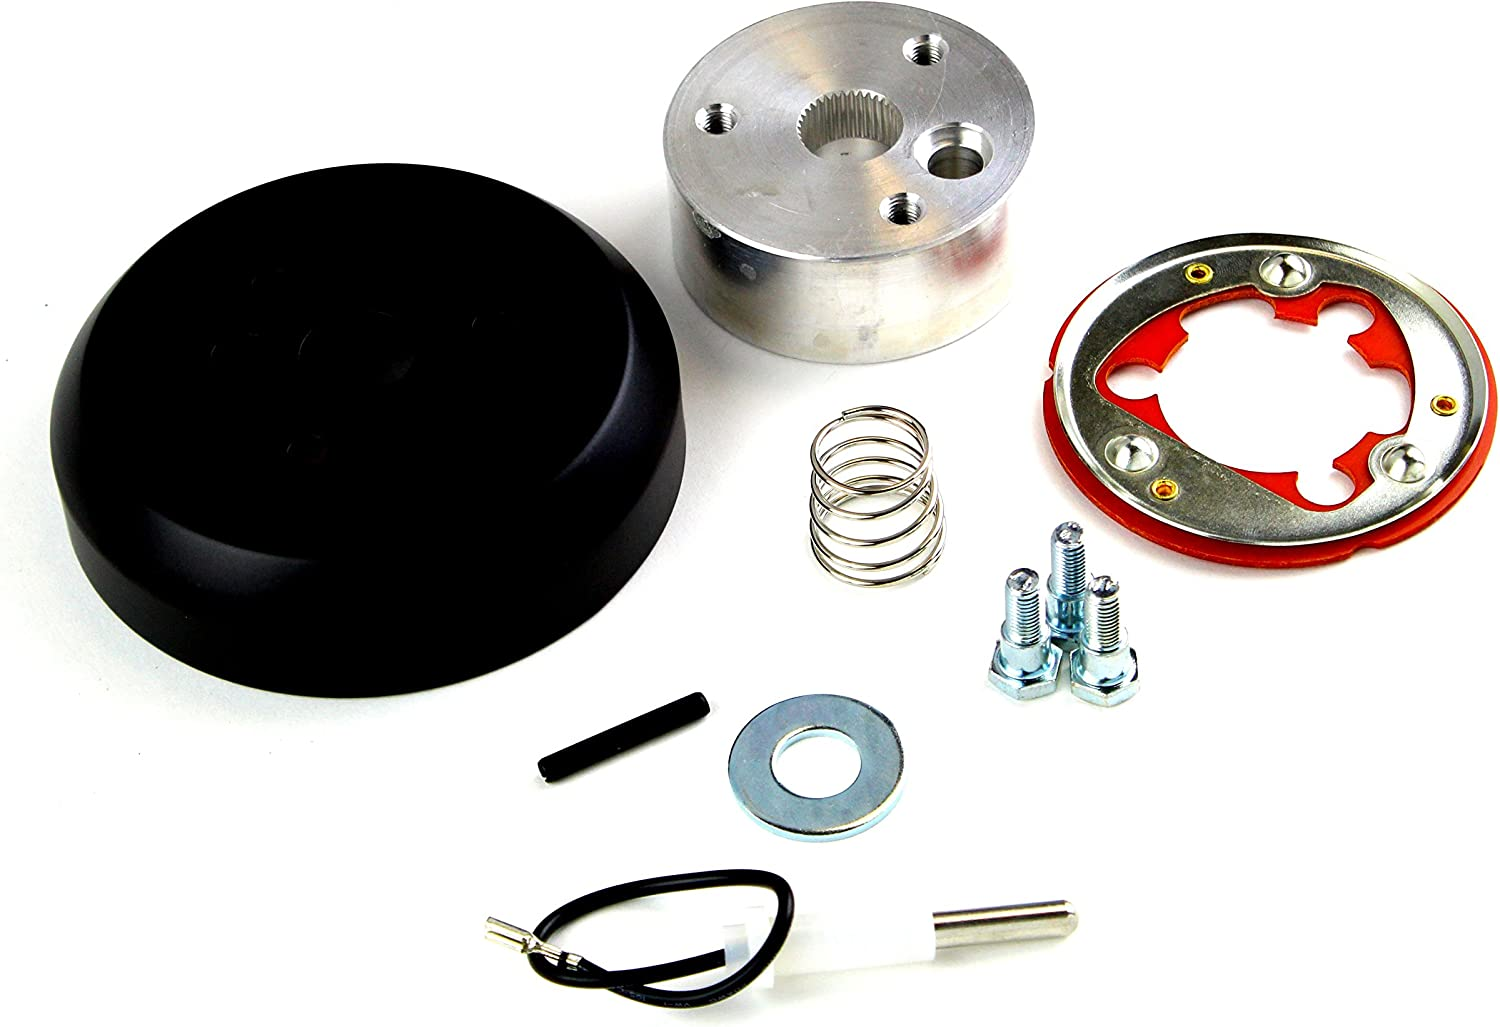 6 Hole Matte Black Hub Adapter Installation Kit A02 For Aftermarket Steering Wheels